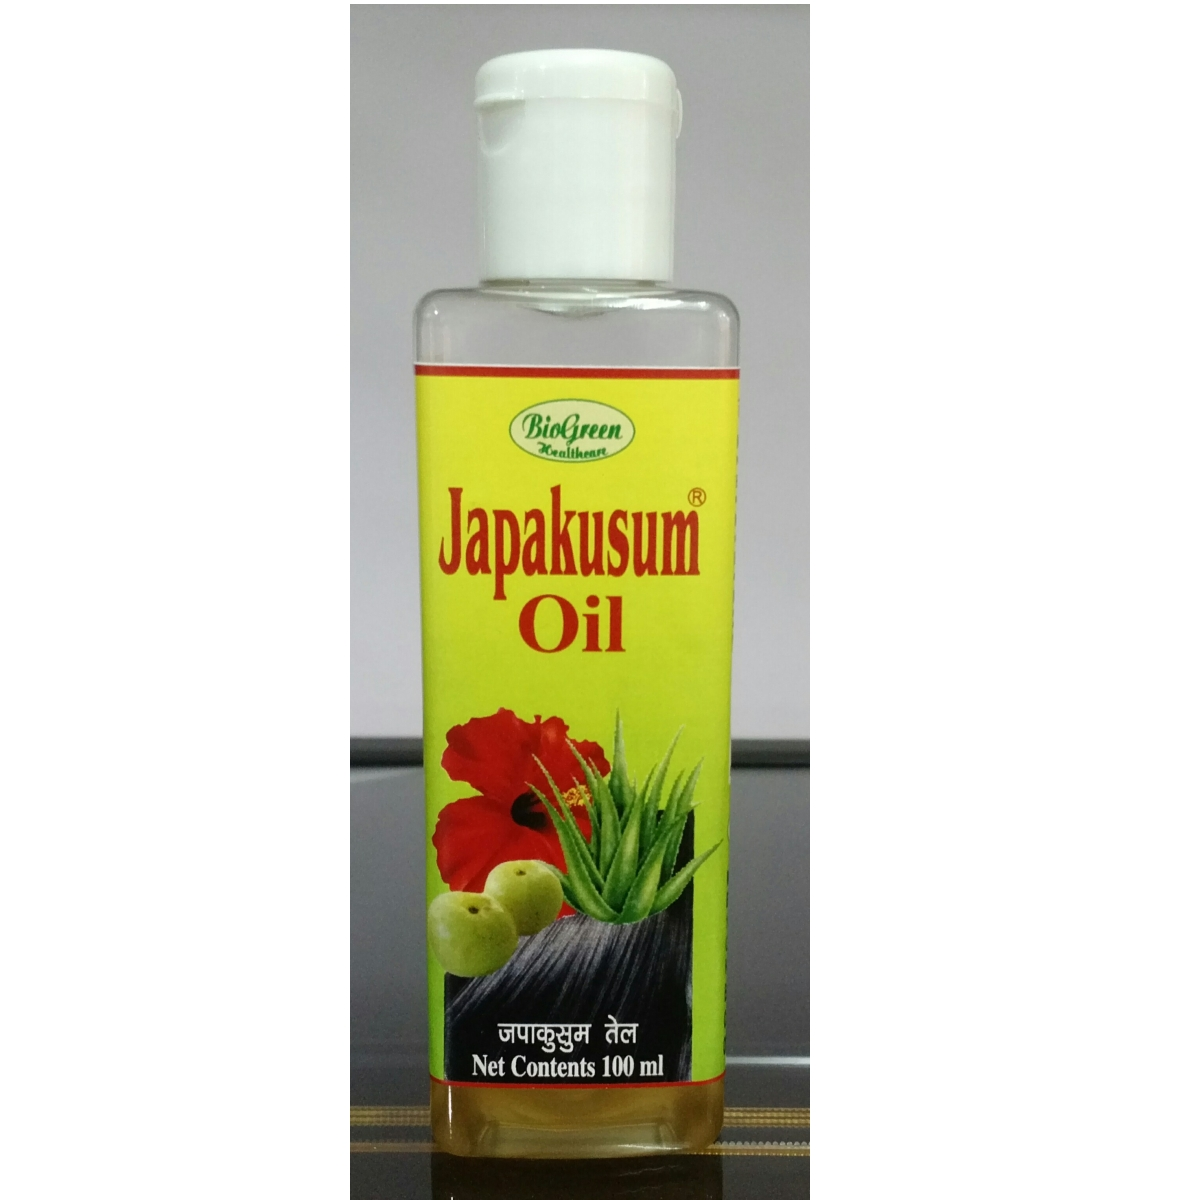 Japakusum Oil In Shahdol